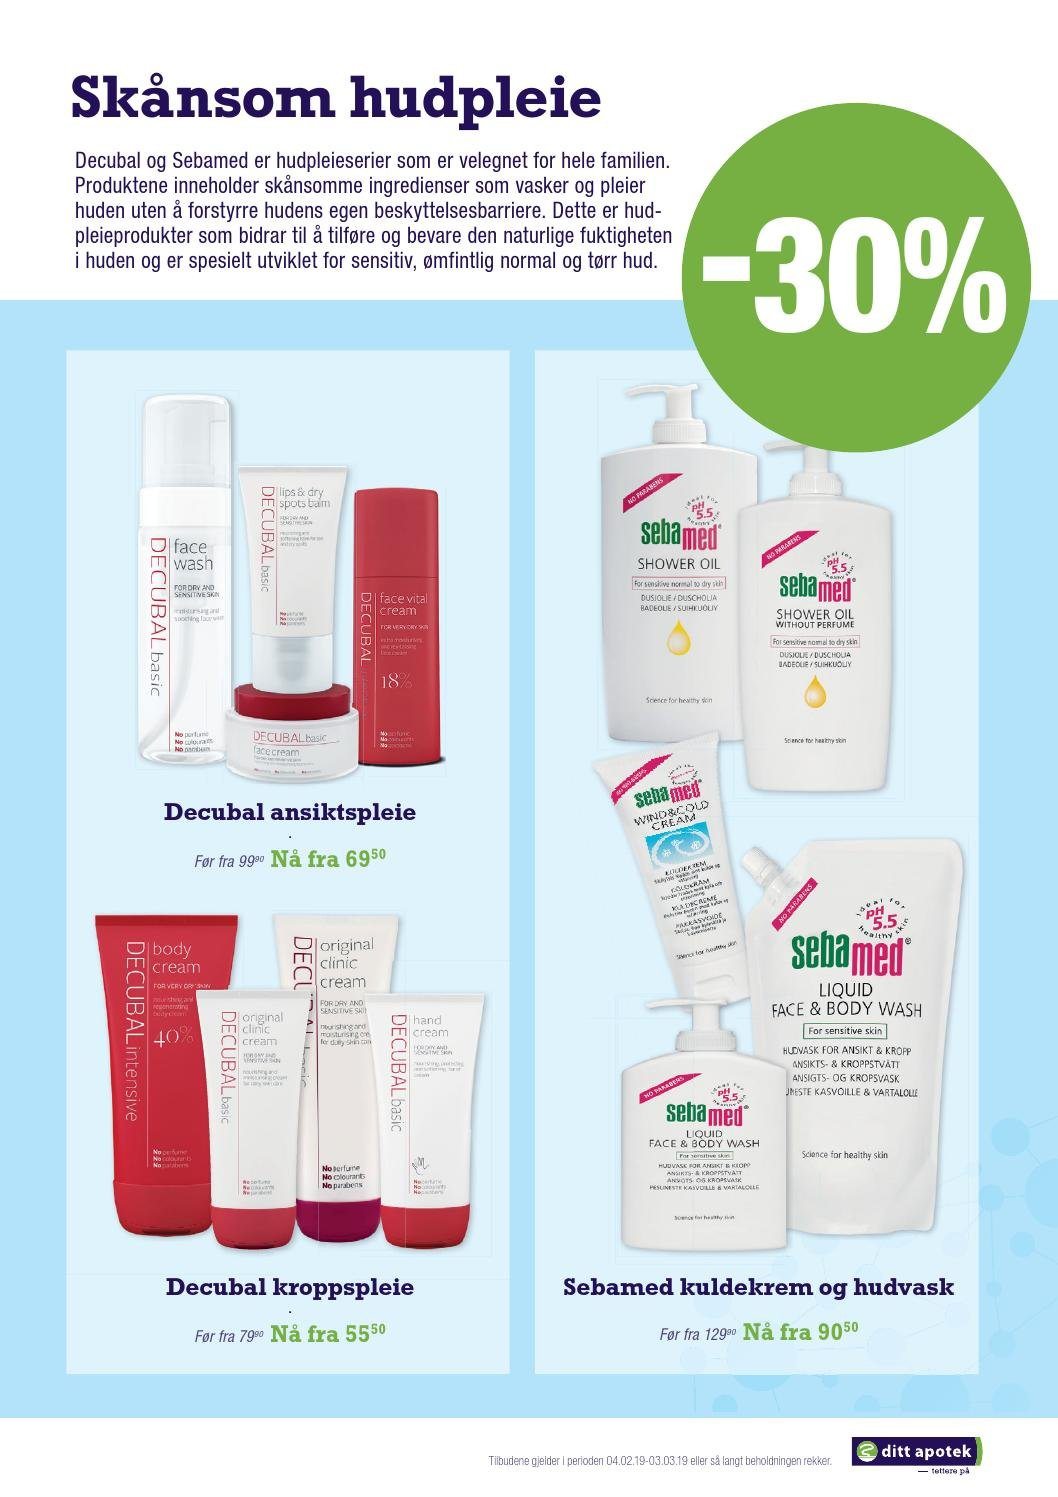 Kundeavis Ditt Apotek - 04.02.2019 - 03.03.2019 - Produkter fra tilbudsaviser - body cream, body wash, shower oil, decubal, cream. Side 5.